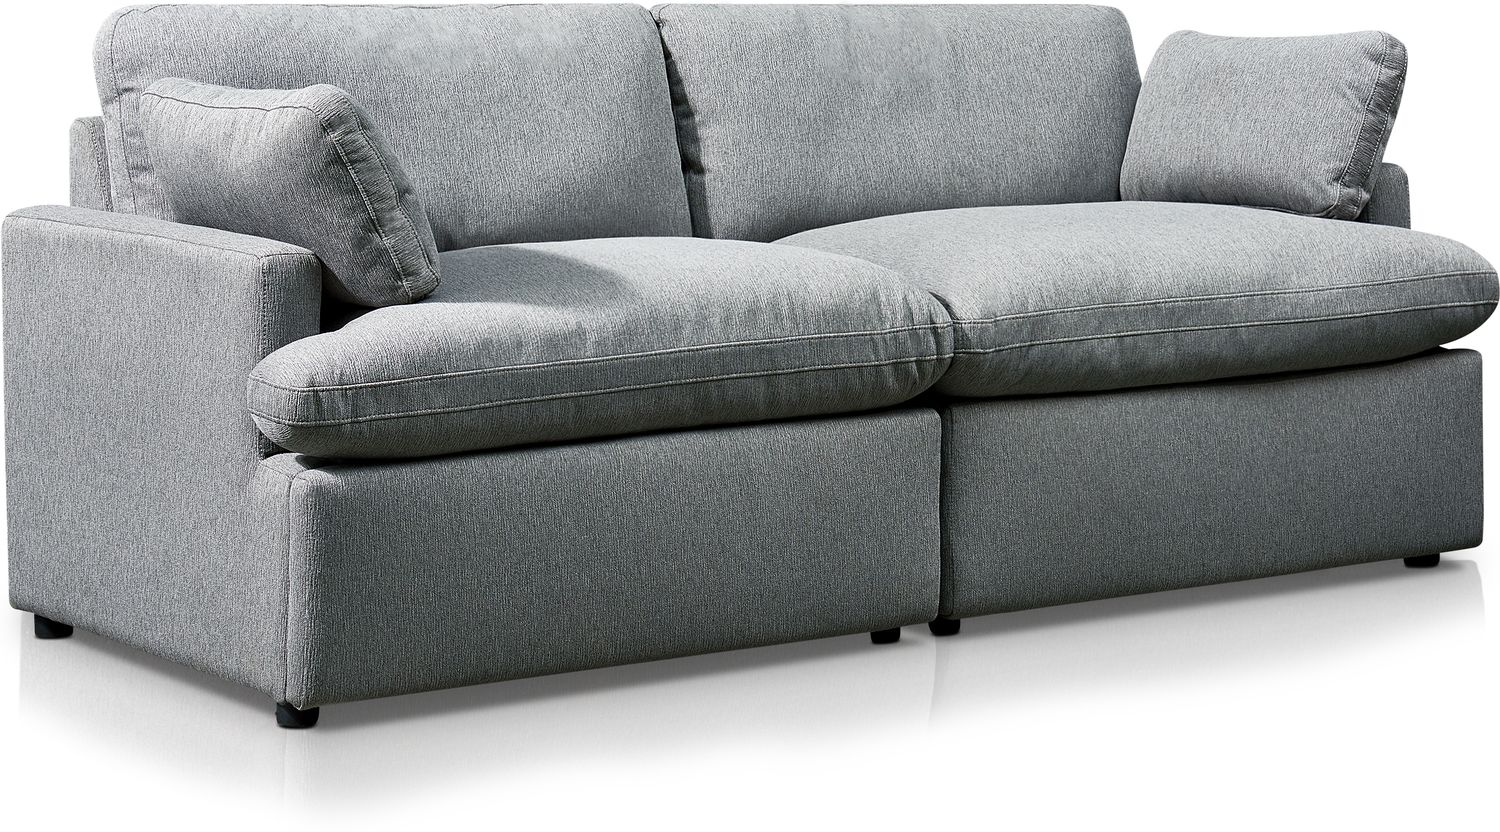 Living Room Furniture - Cozy 2-Piece Sofa